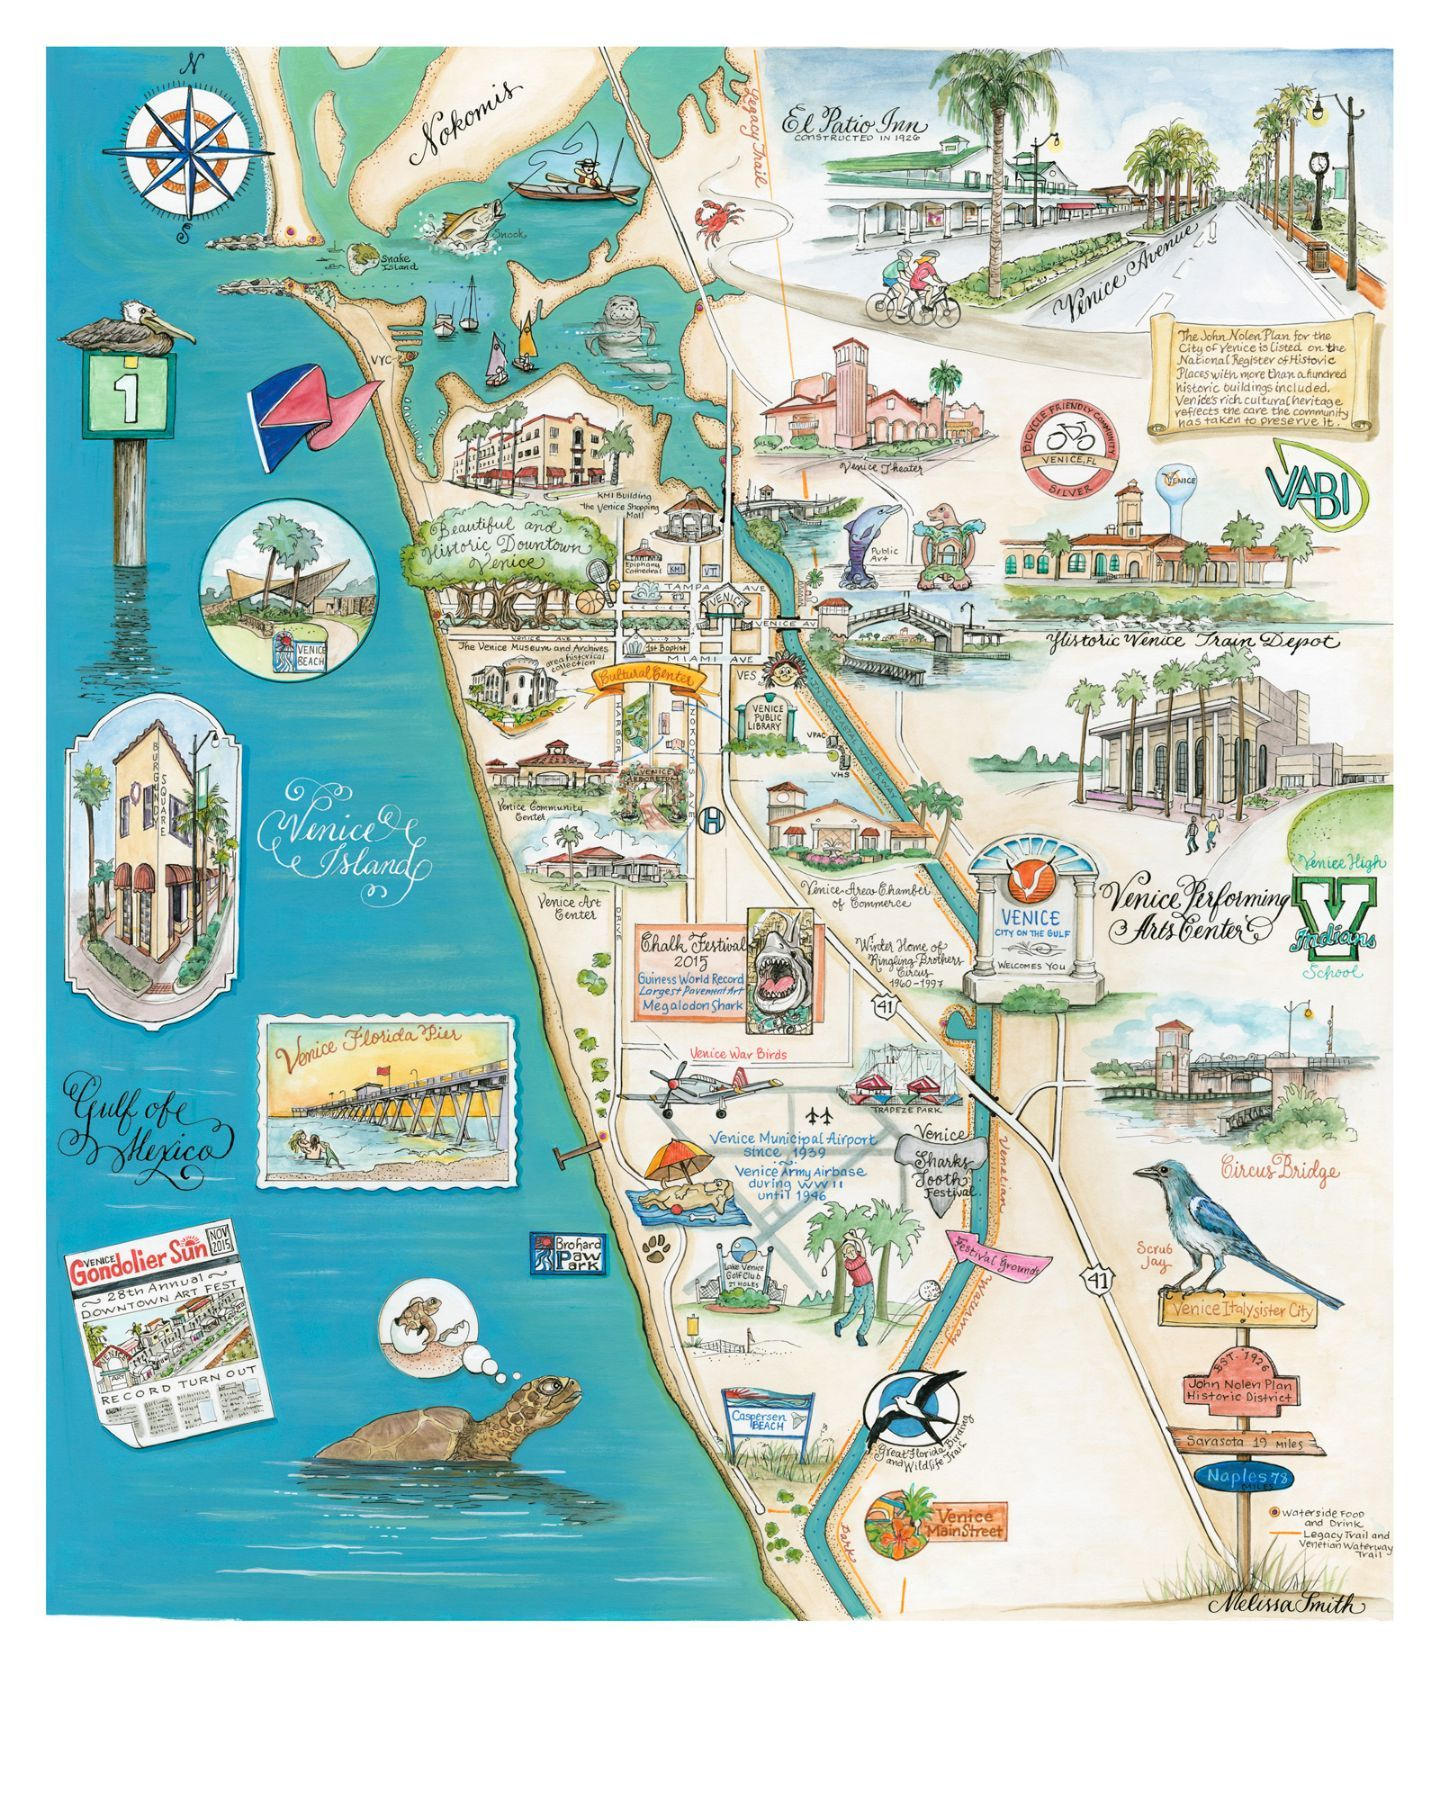 Venice, Florida Map - This Map Is One Of The Prettiest Maps I Have - Sarasota Bradenton Florida Map